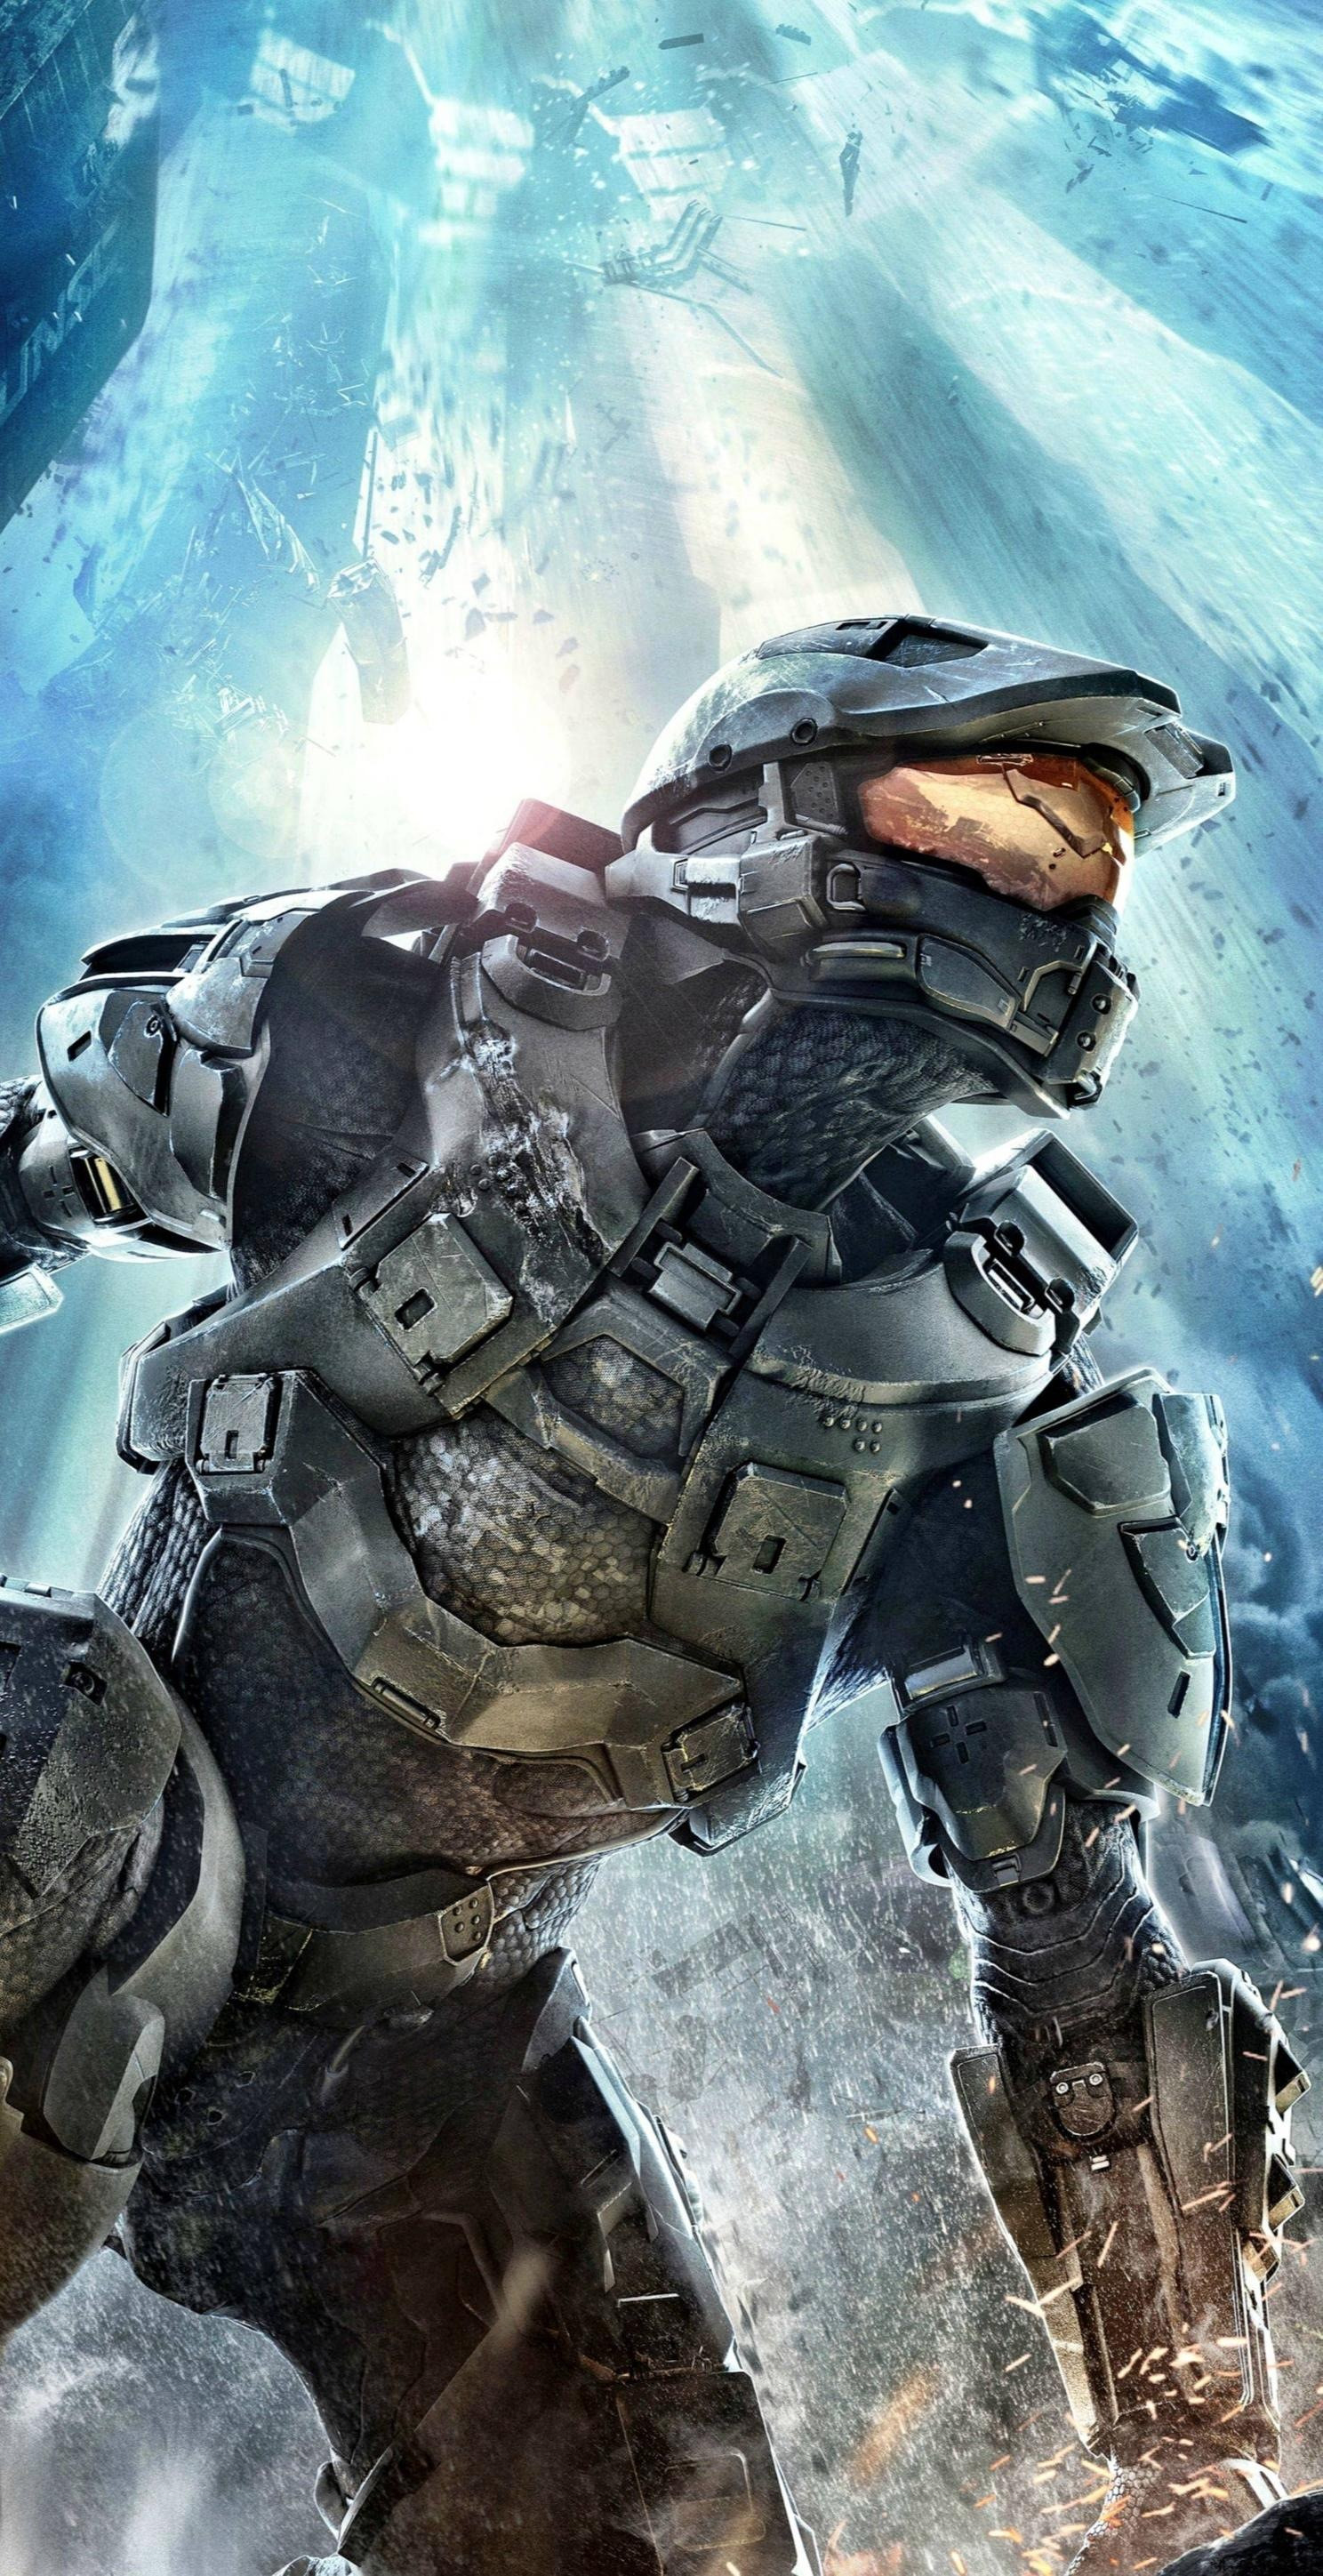 Halo 4 Wallpaper for iPhone 5